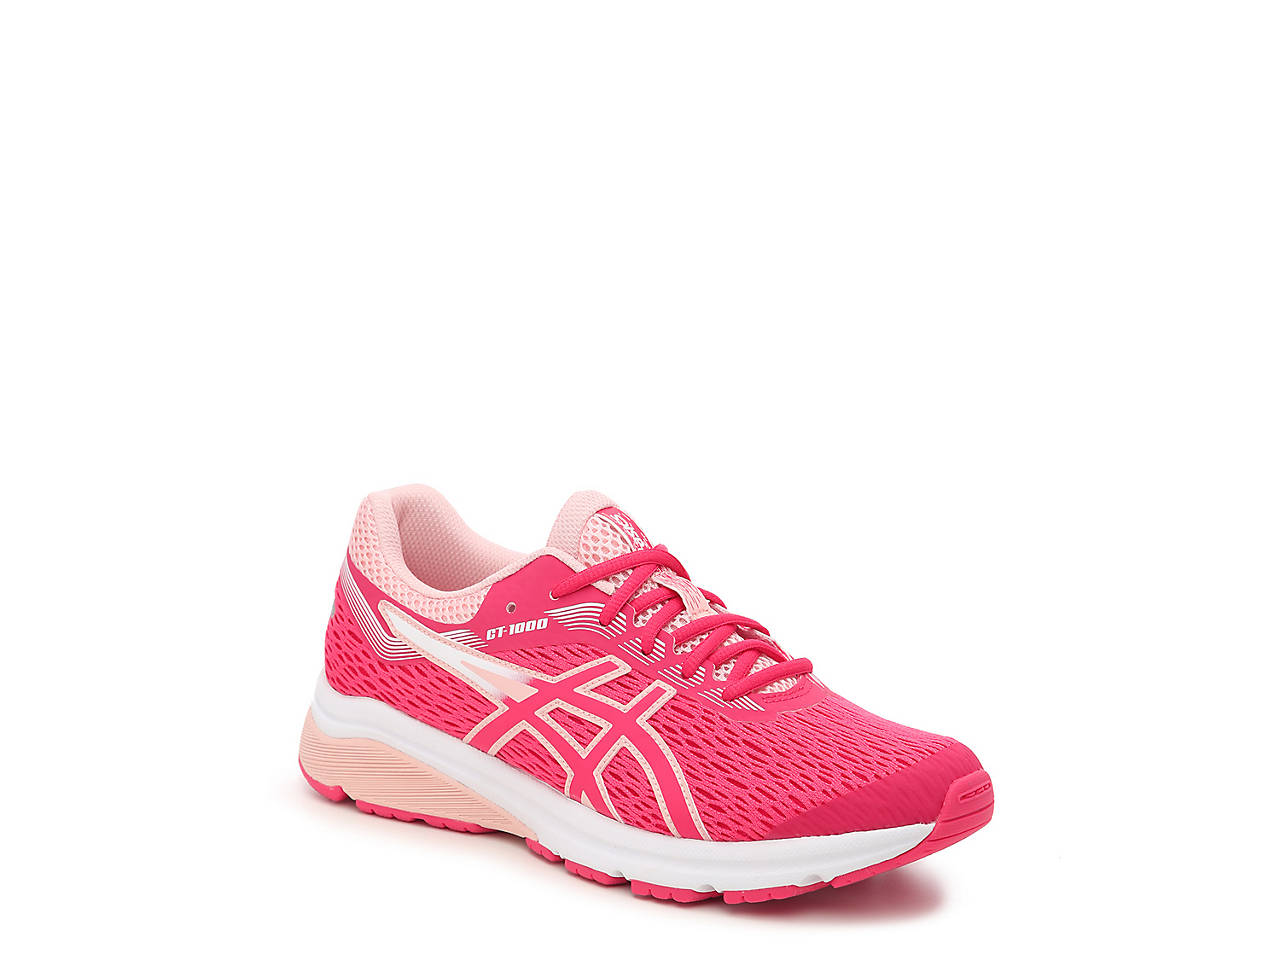 6fcacc4b03 ASICS GT-1000 7 GS Youth Running Shoe Kids Shoes | DSW